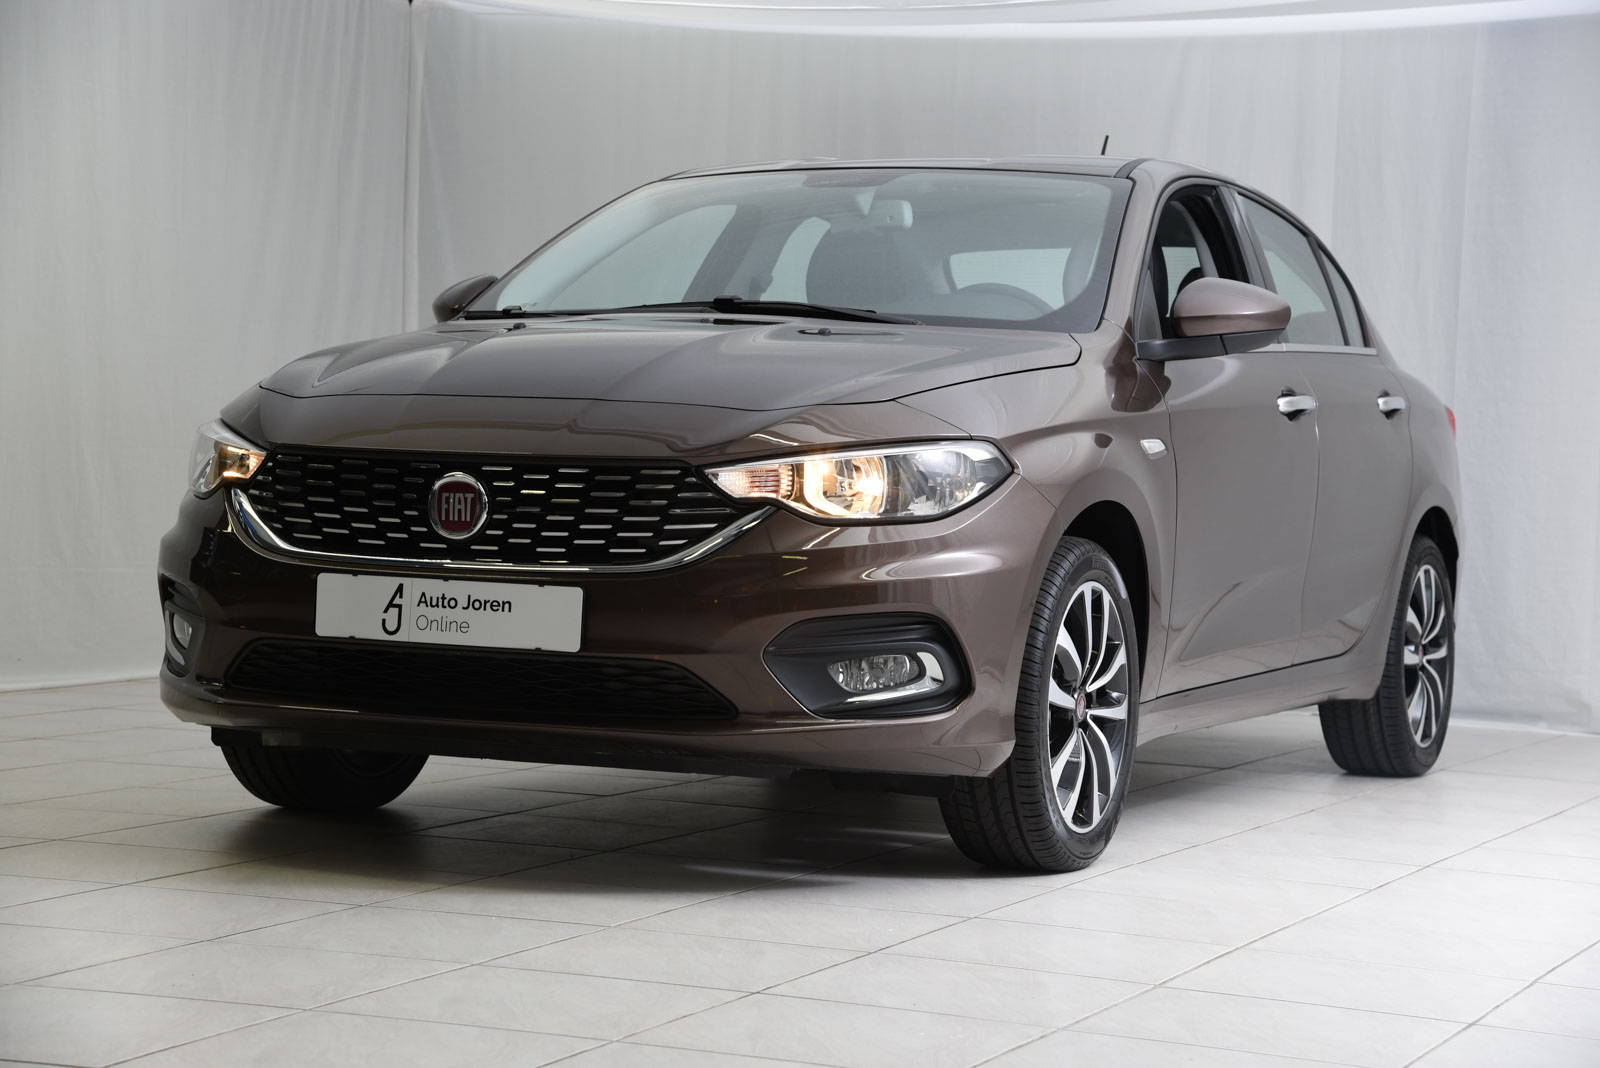 Fiat tipo lounge ruime sedan private lease of kopen for Auto interieur bekleden prijs